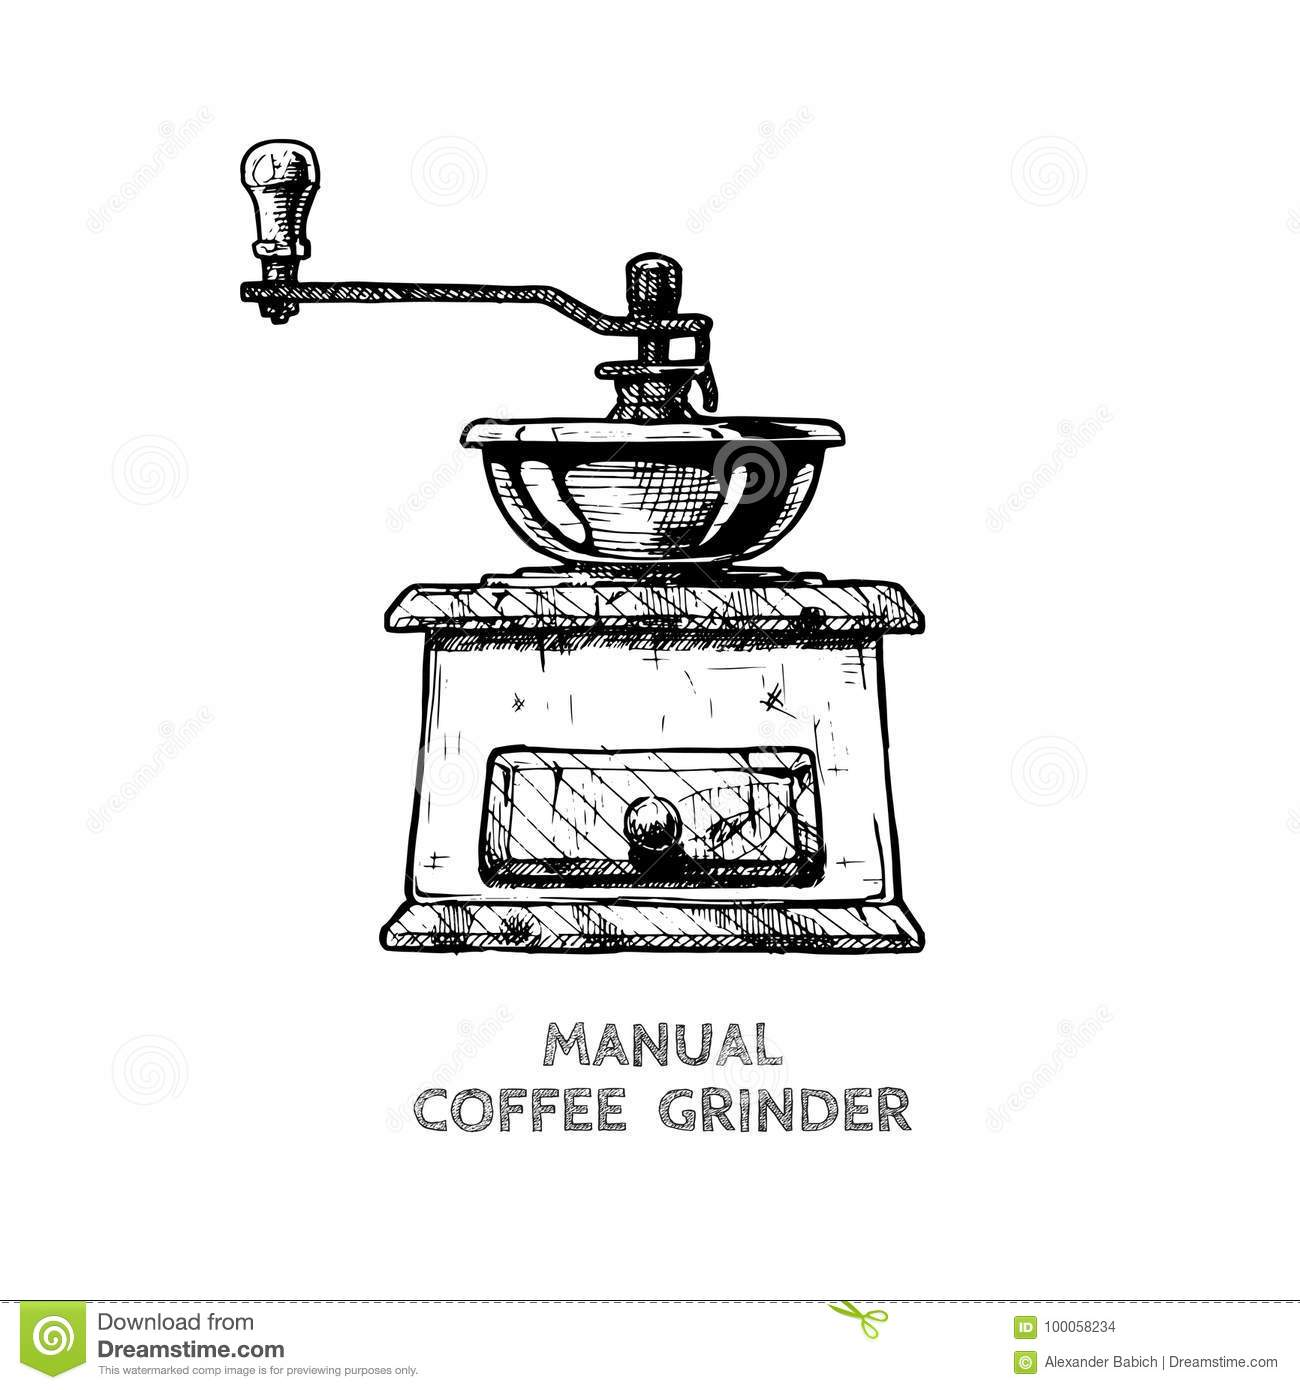 Manual Burr Mill Coffee Grinder Stock Vector